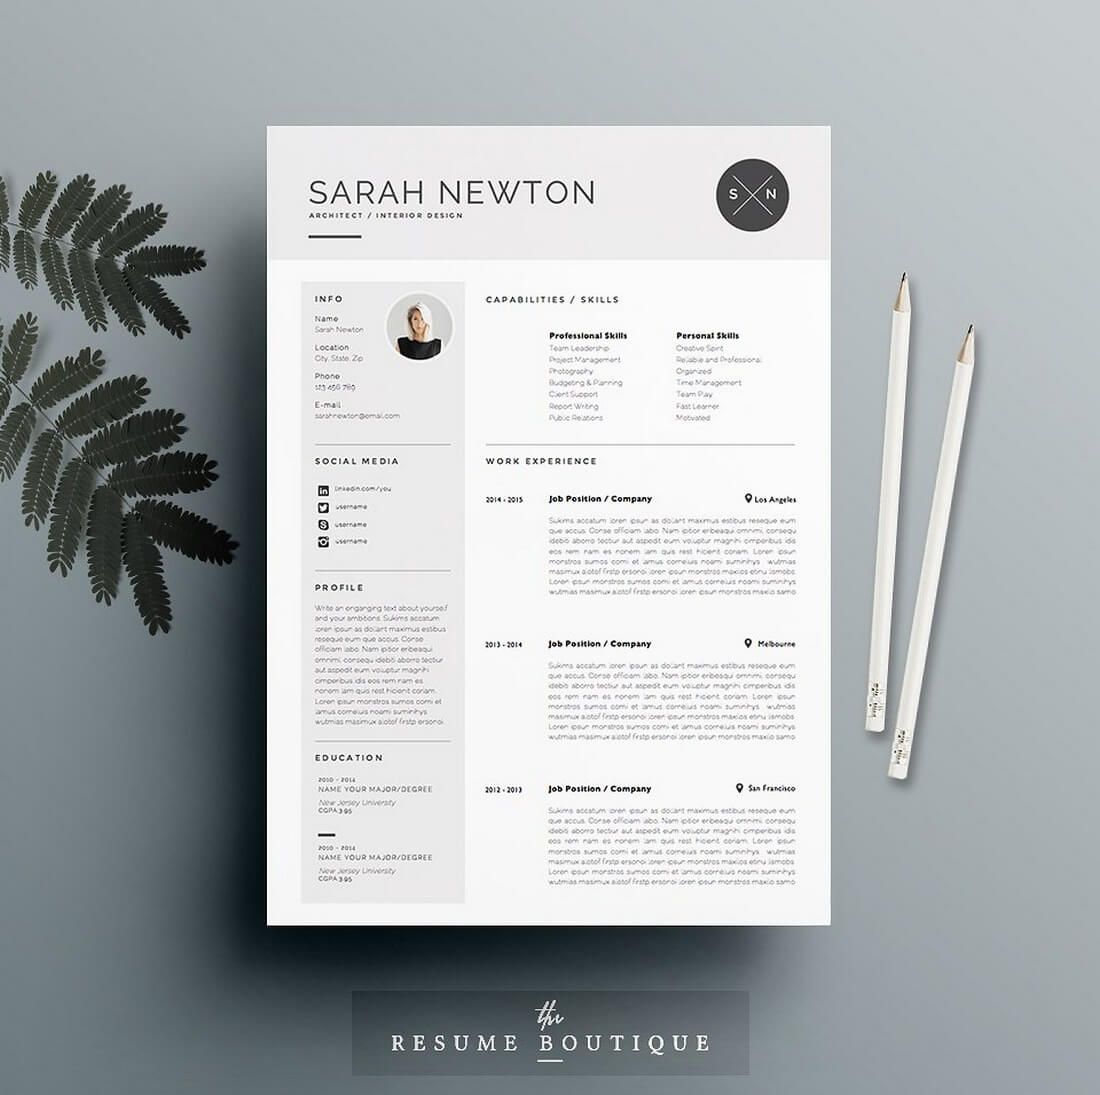 Wonderful 1 Page Resume Format Download Huge 1 Page Resume Or 2 Regular 1 Year Experience Java Resume Format 11x17 Graph Paper Template Young 15 Year Old Funny Resume Coloured15 Year Old Student Resume The Best CV \u0026 Resume Templates: 50 Examples \u2013 Ok Huge